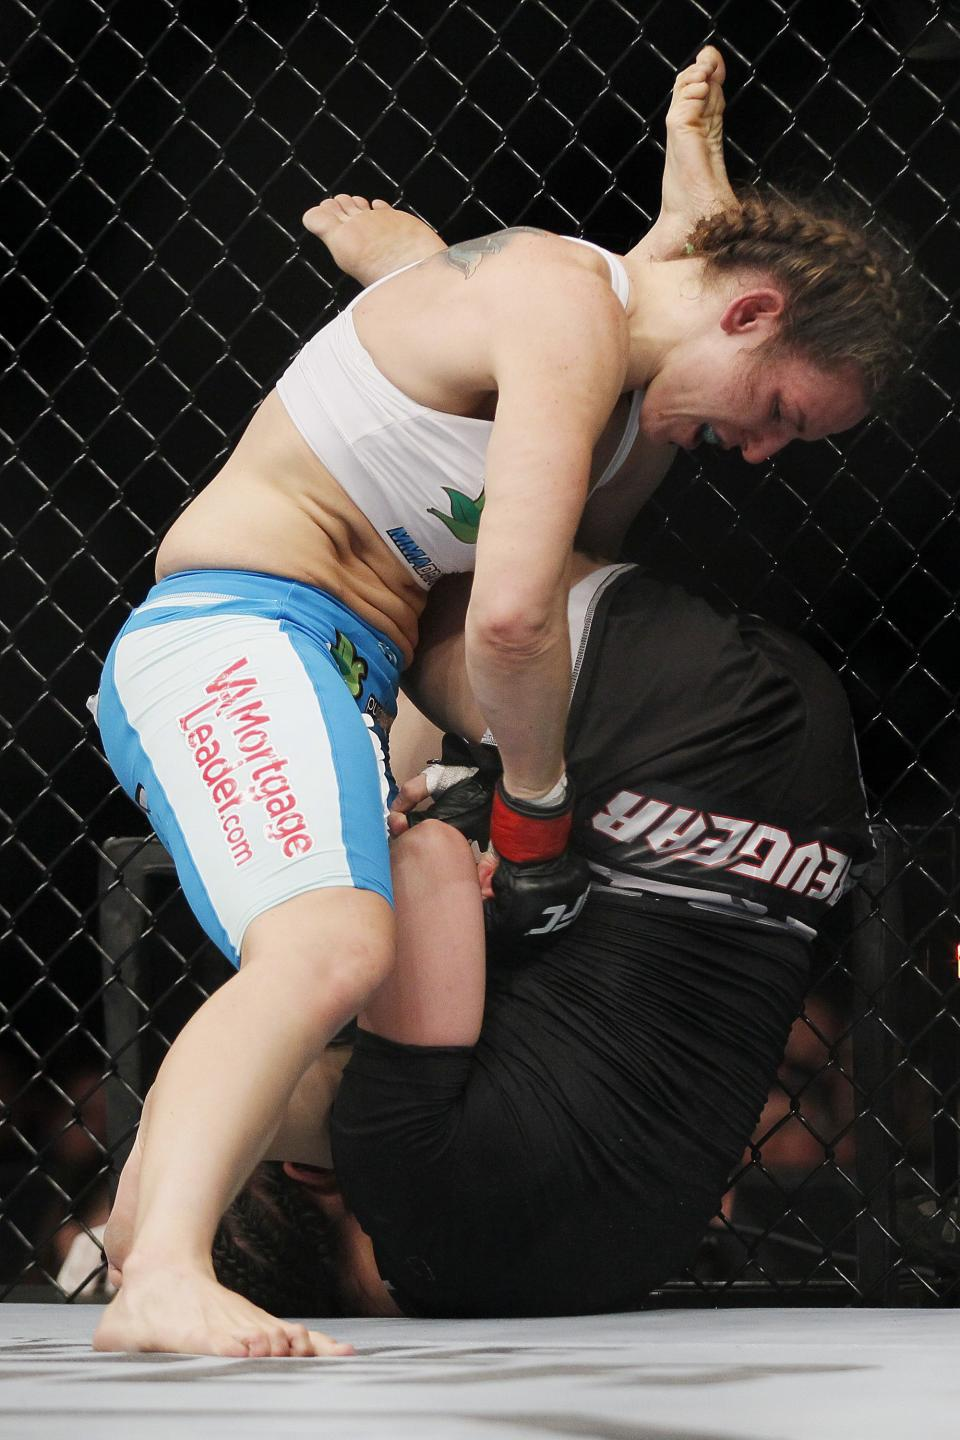 Alex Davis drives down hard on Rosi Sexton during their women's bantamweight bout at UFC 161 in Winnipeg on Saturday June 15, 2013. (AP Photo/The Canadian Press, John Woods)